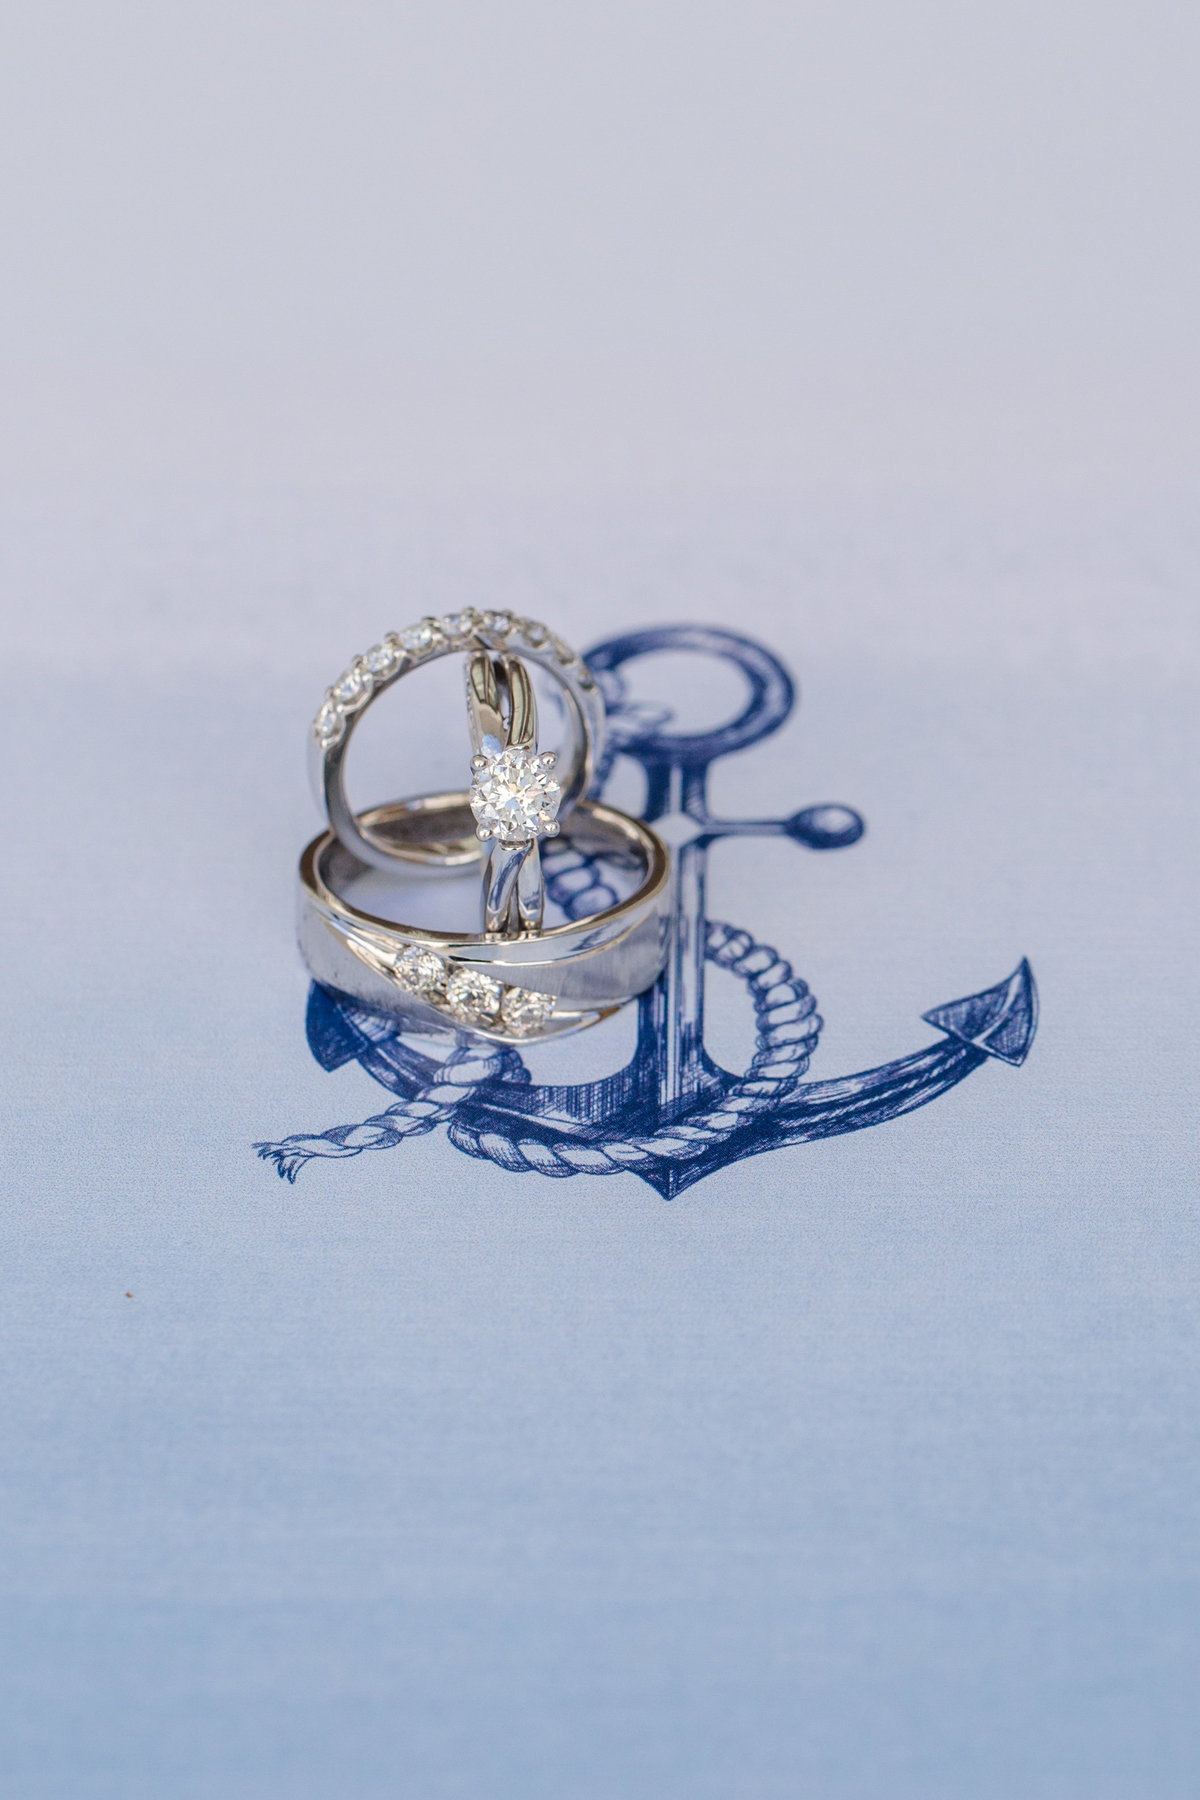 anchor details for wedding day